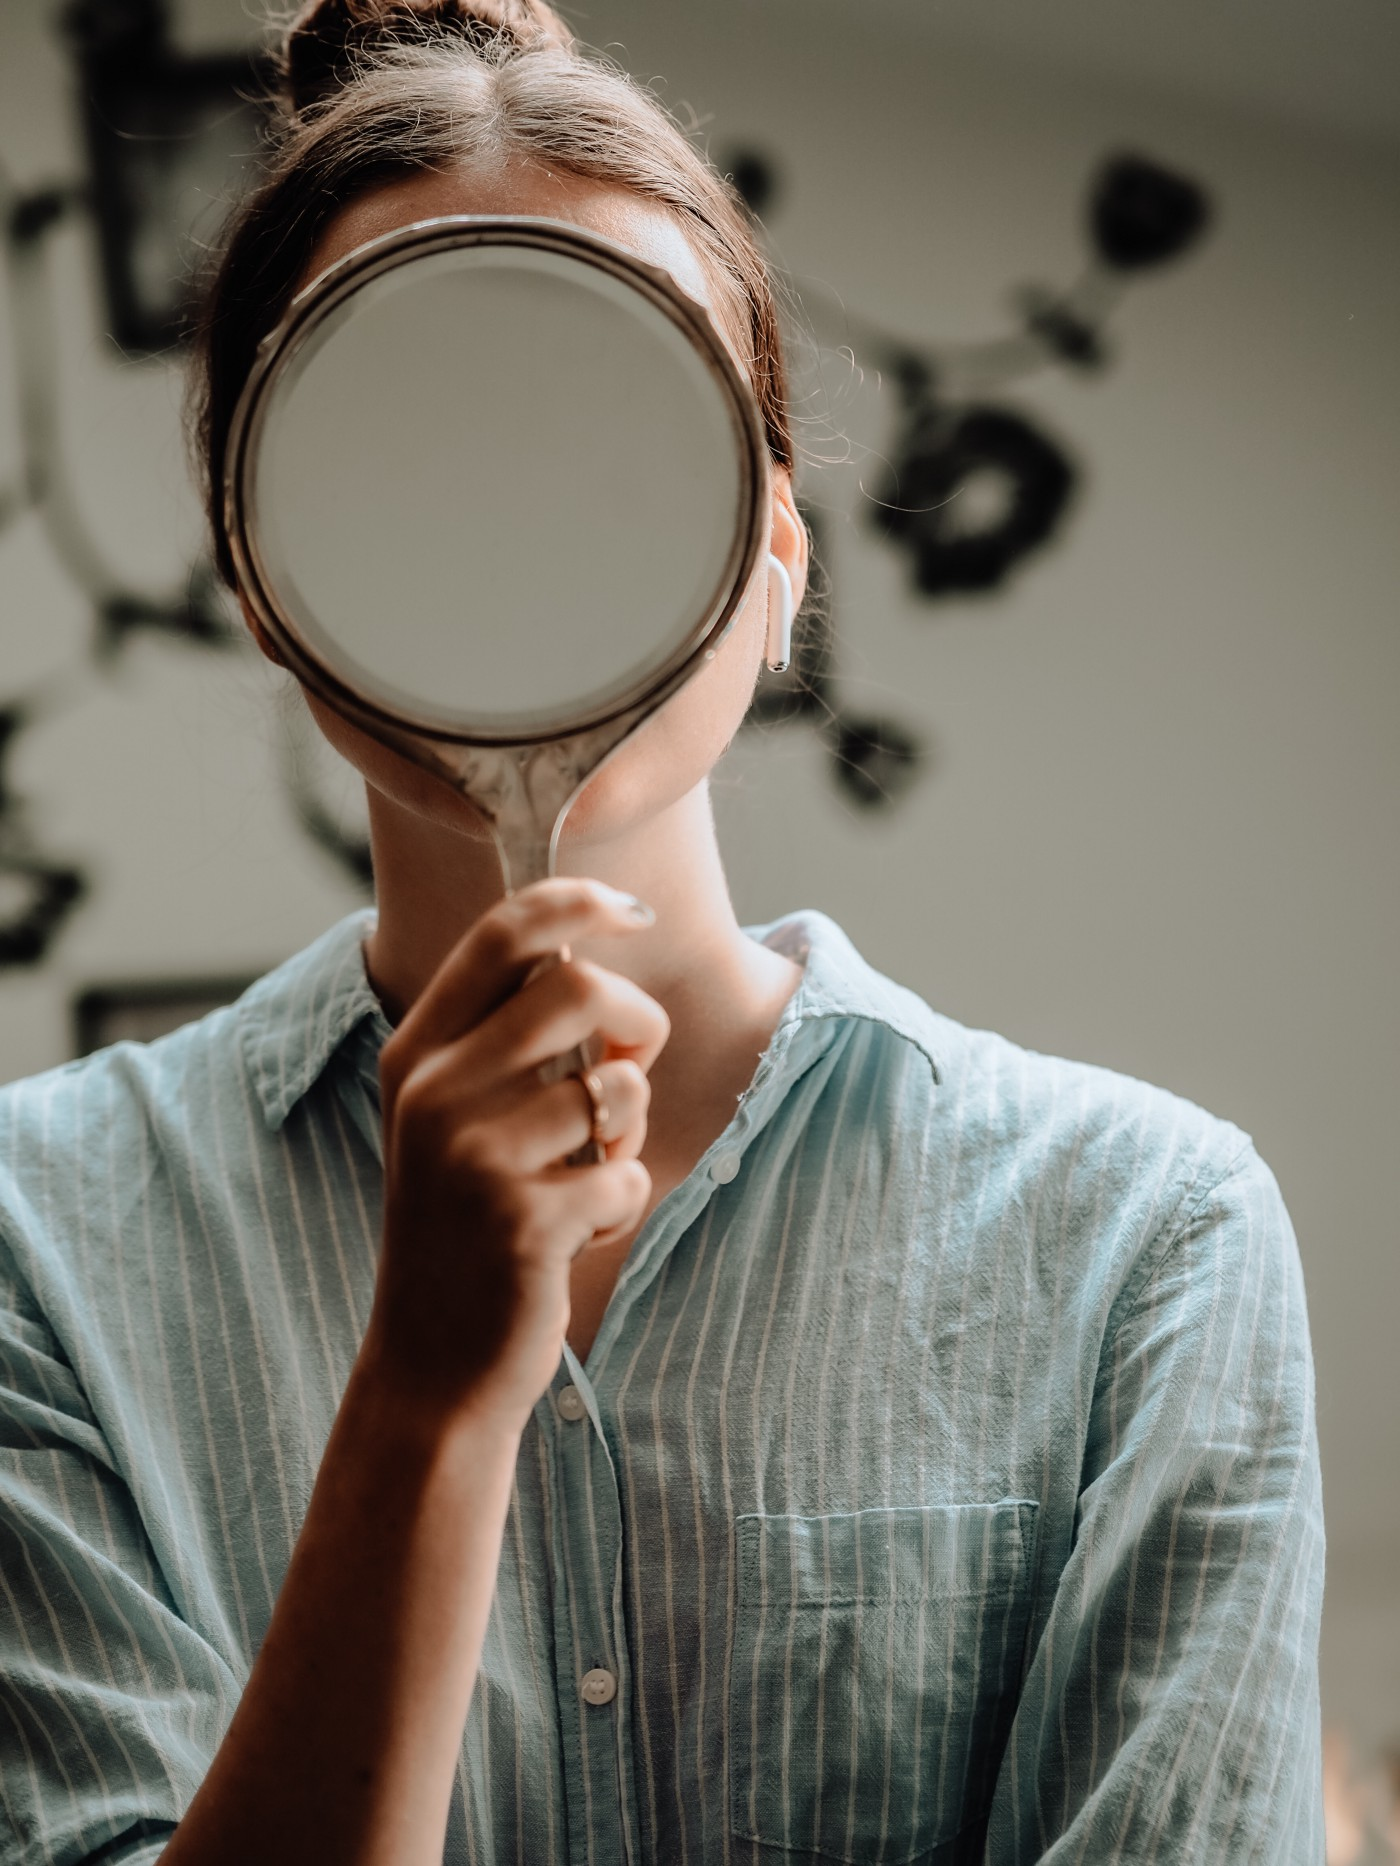 mirror hides the person's face